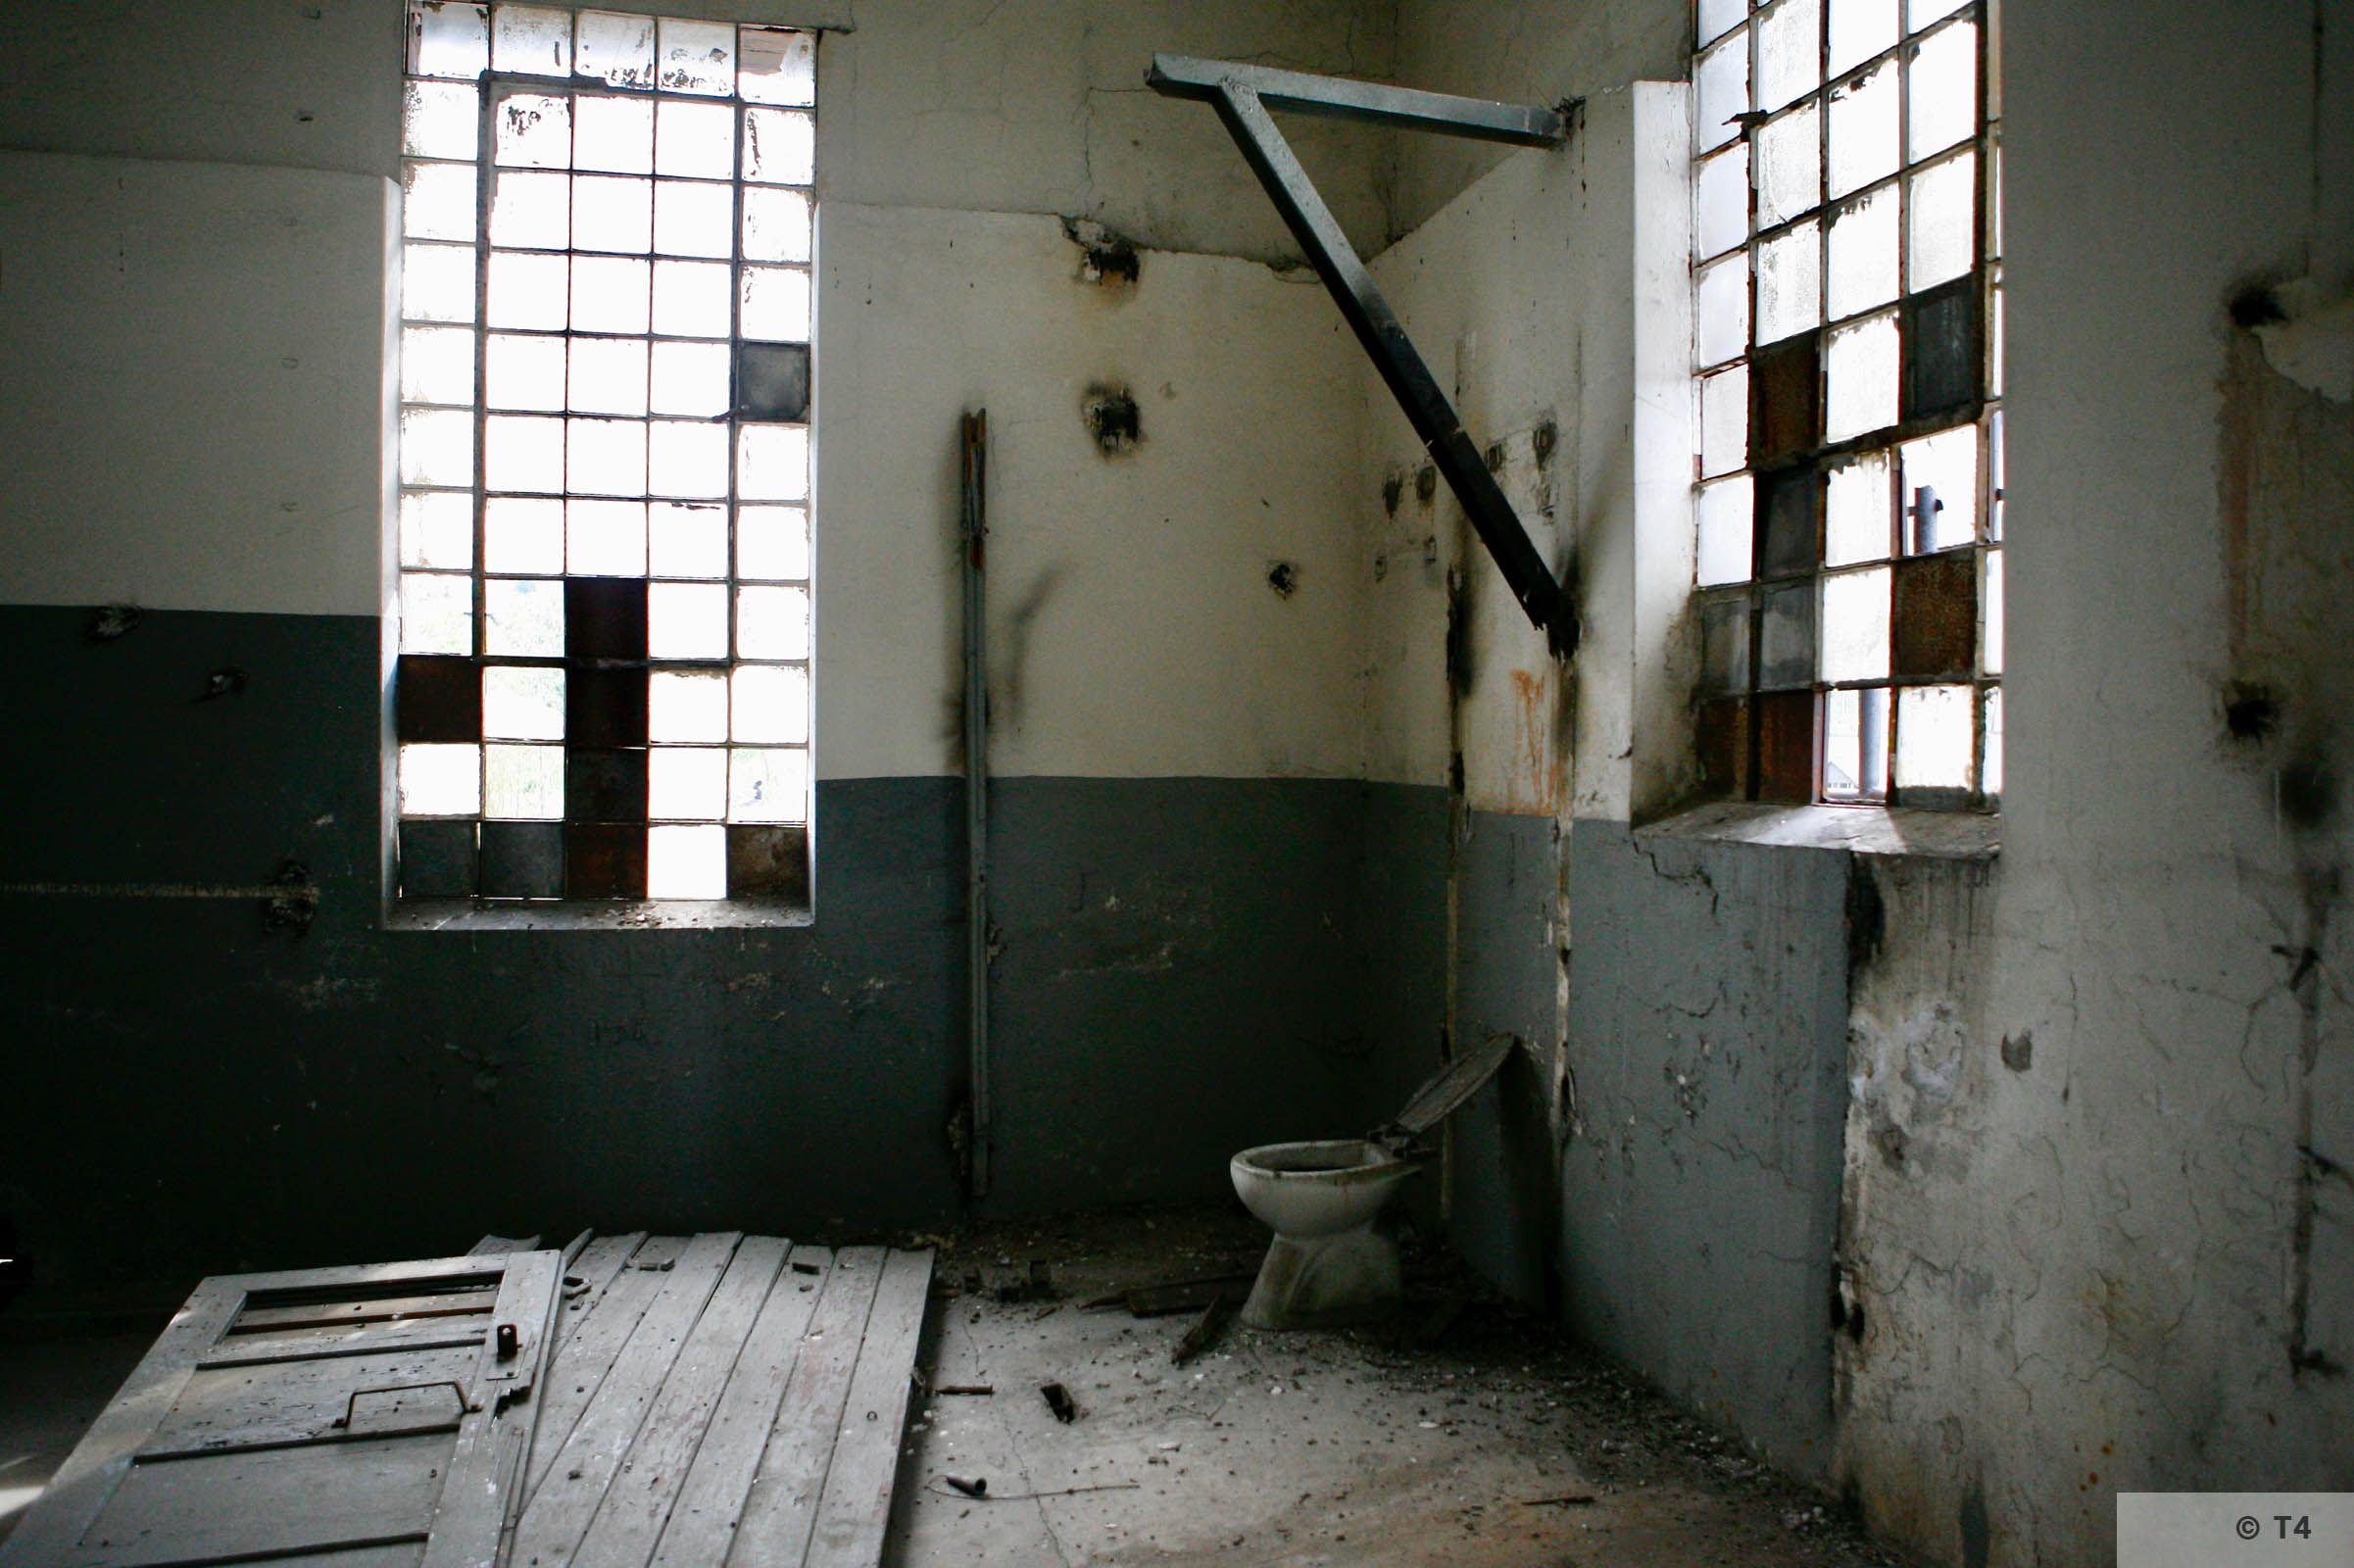 Toilet and bathroom prisoner warehouse building 2006 T4 3415